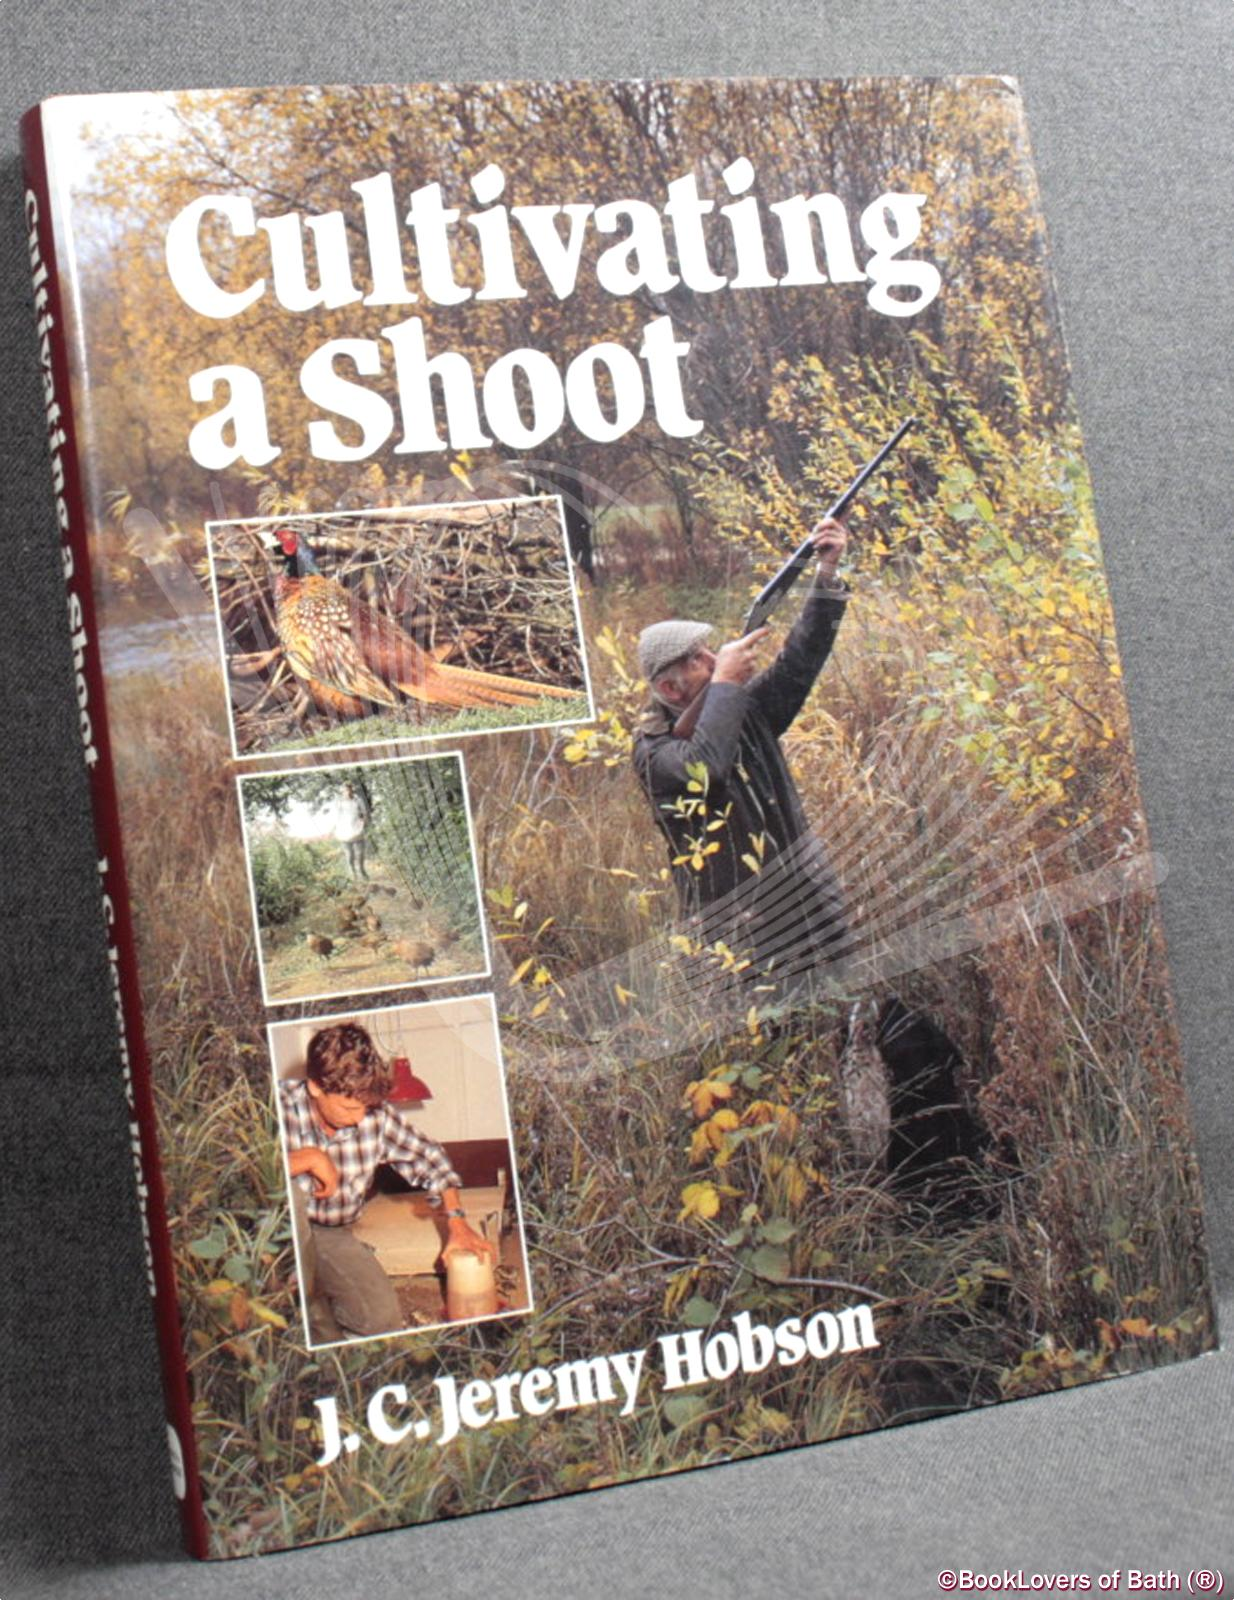 Cultivating a shoot - J. C. Jeremy Hobson